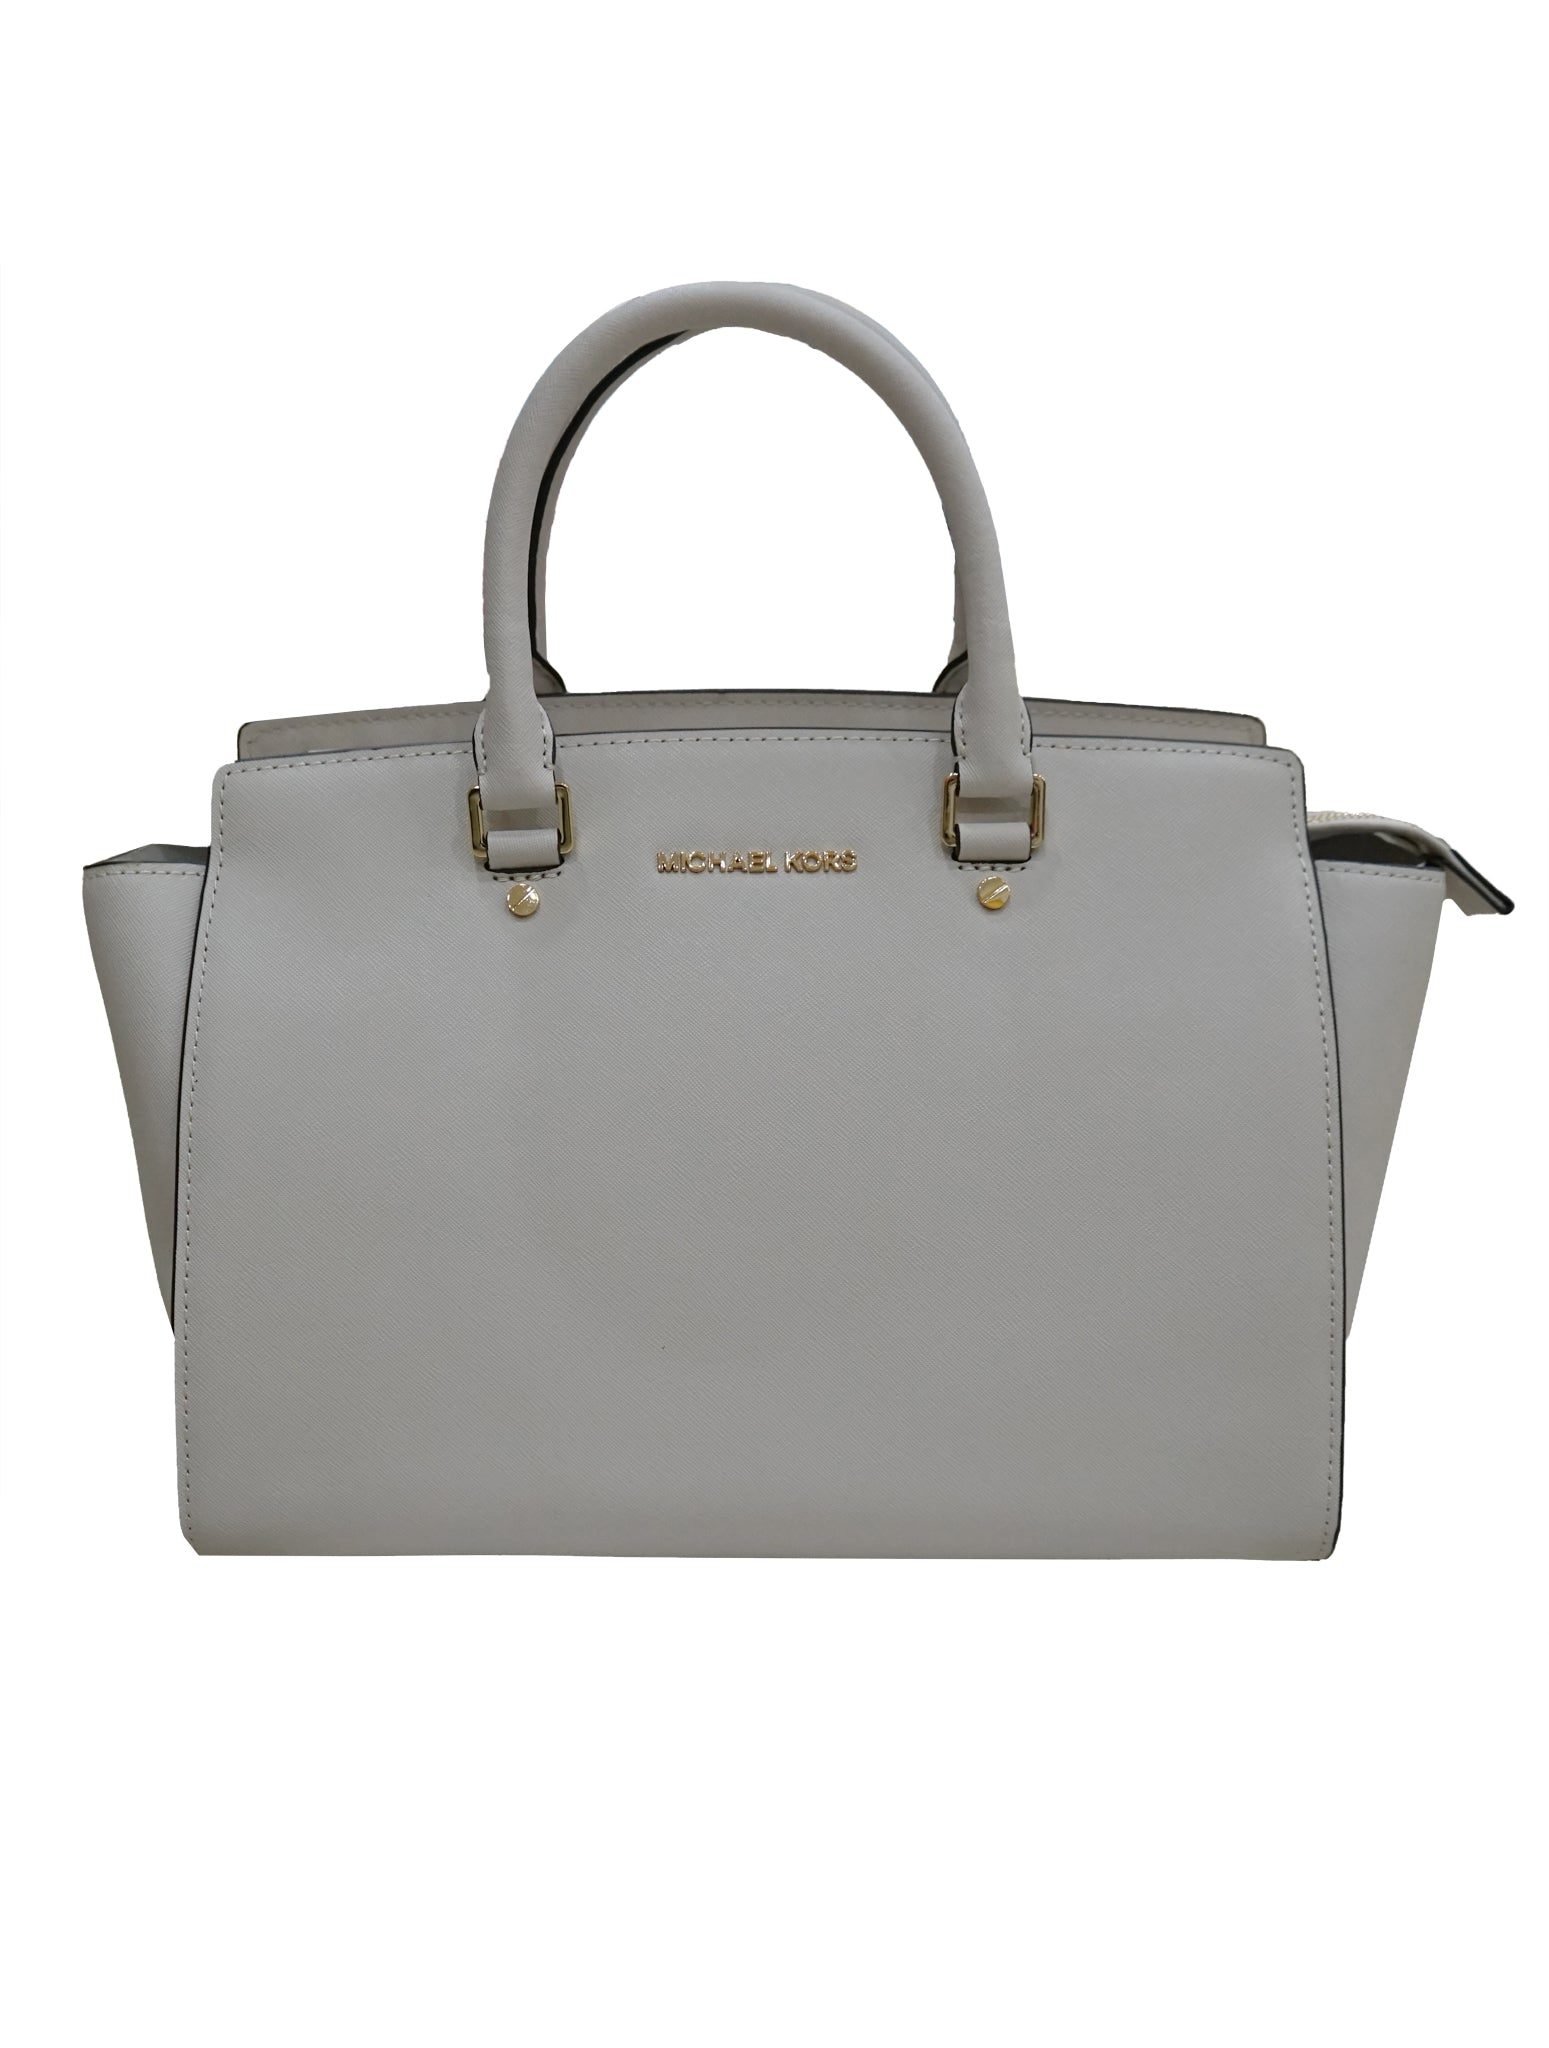 OFF WHITE SAFFIANO LEATHER MEDIUM SELMA